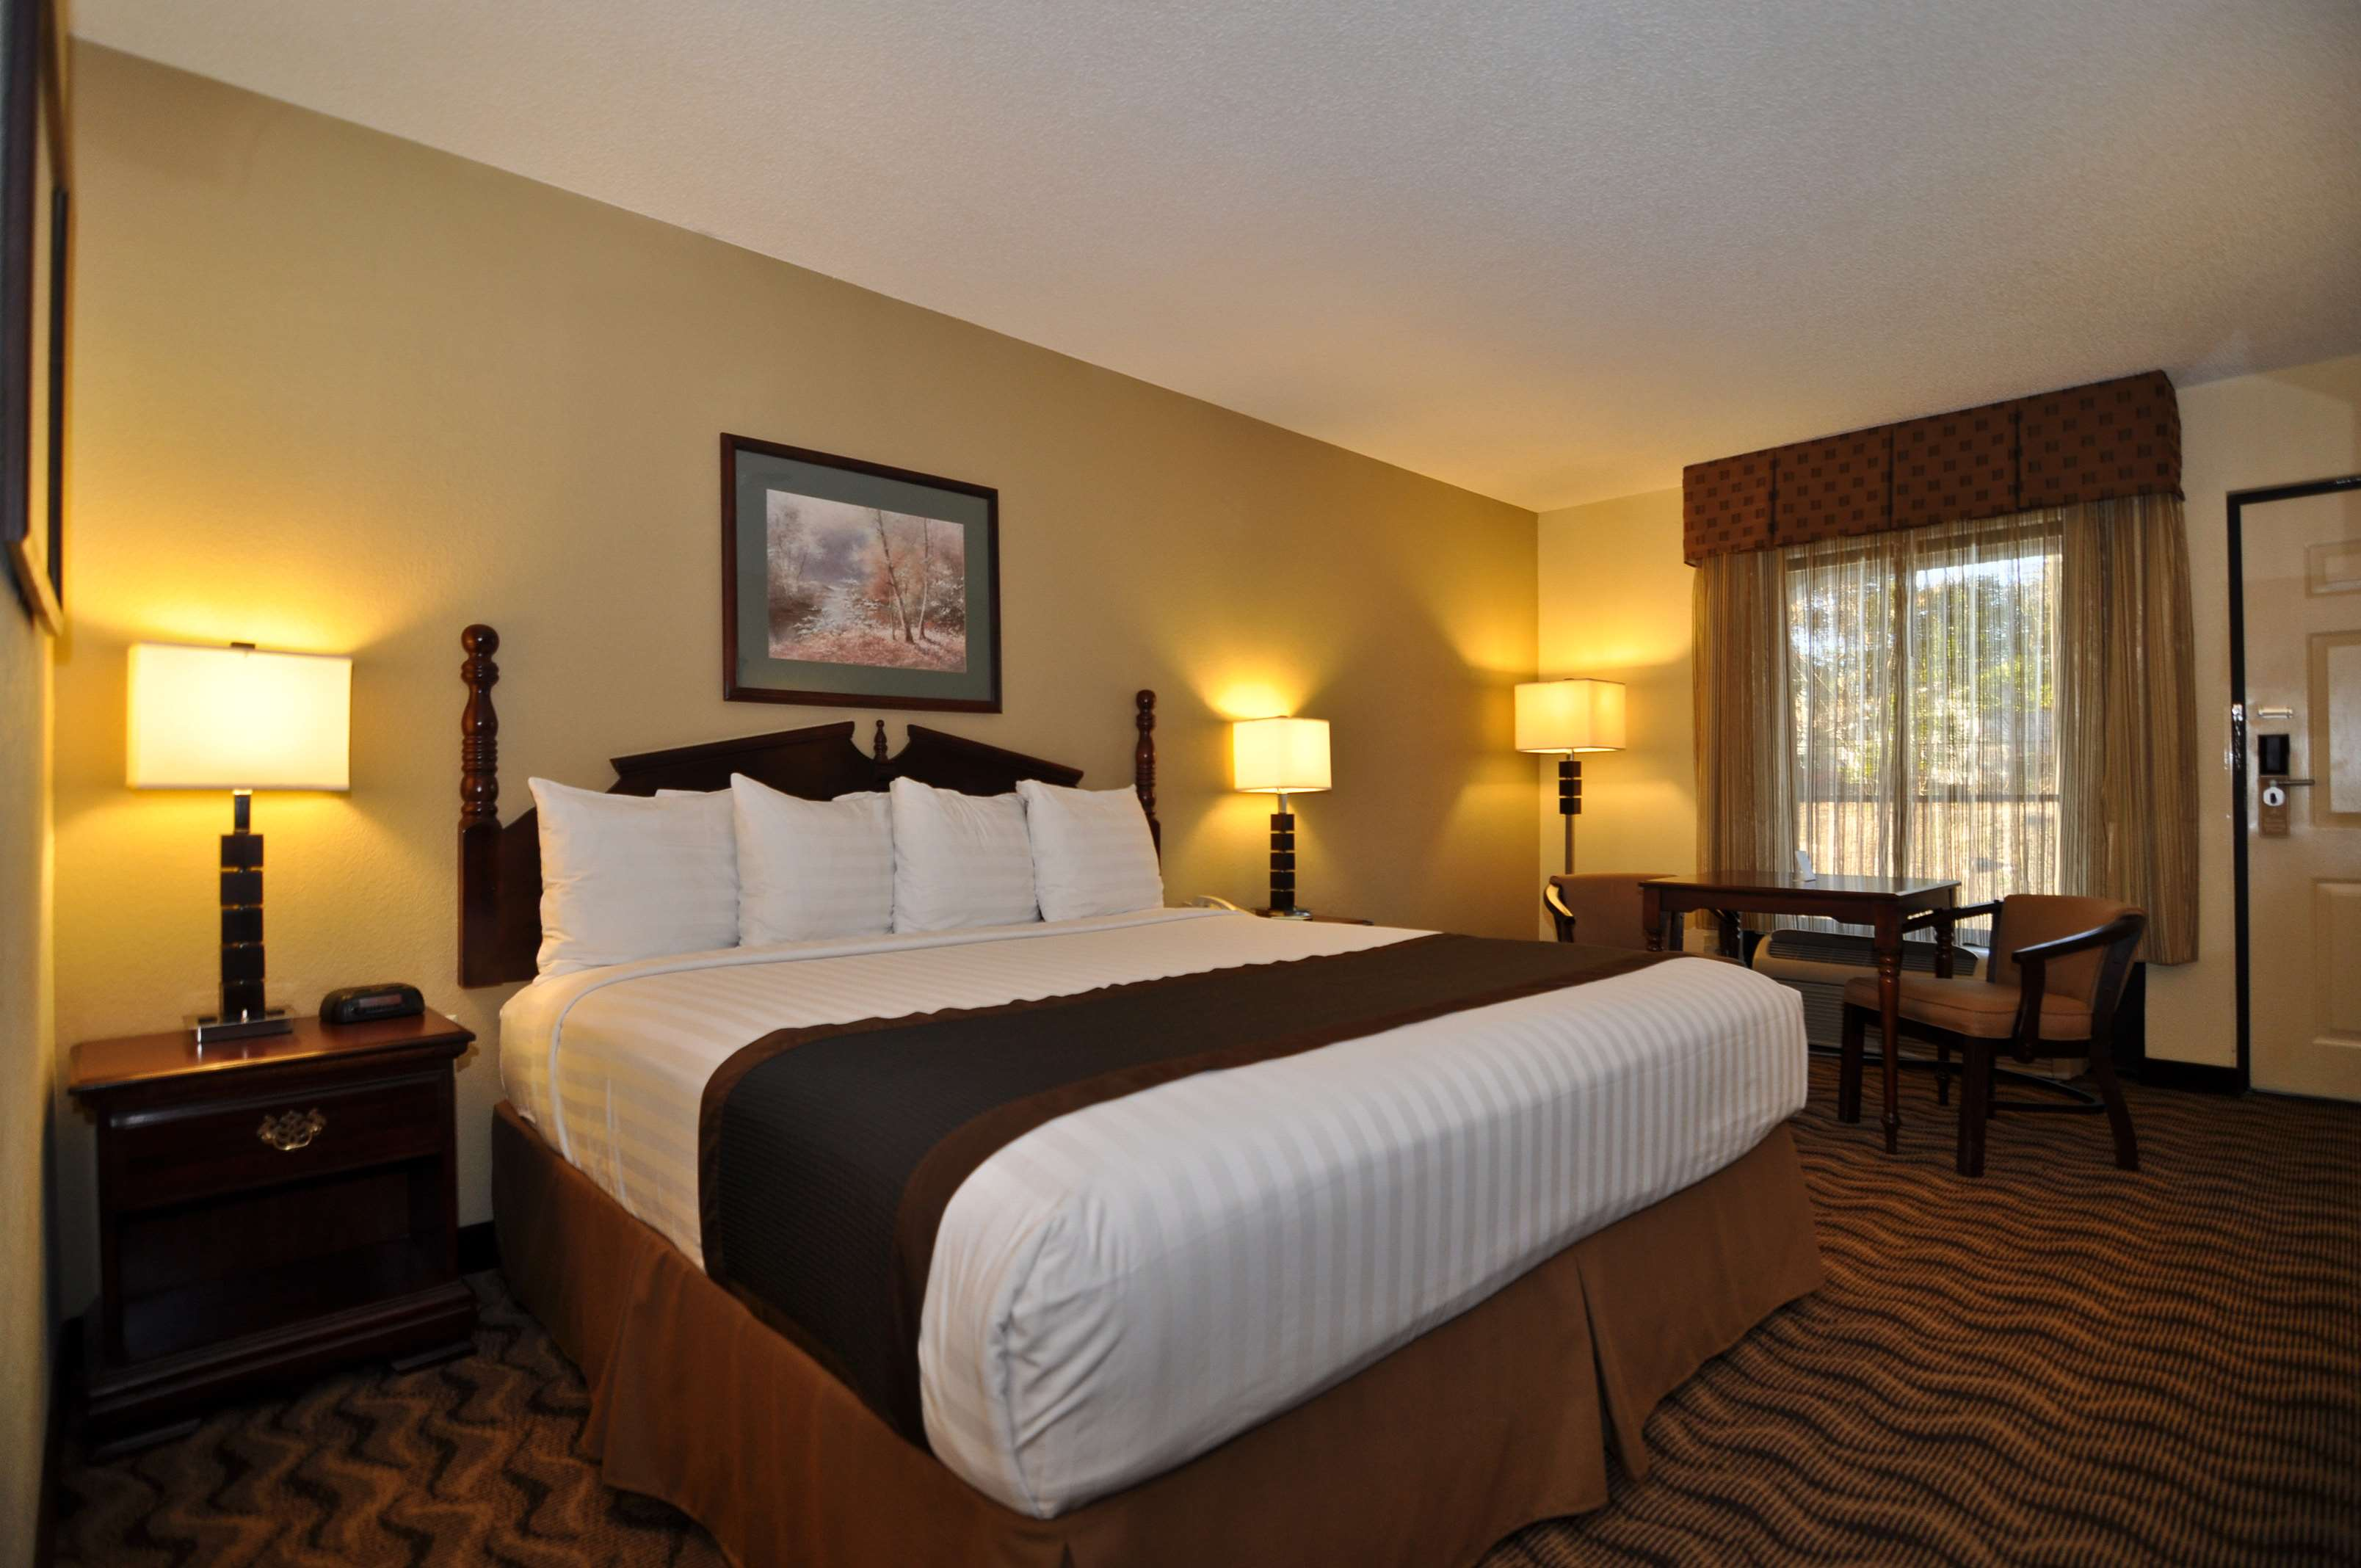 Best Western Andalusia Inn image 17